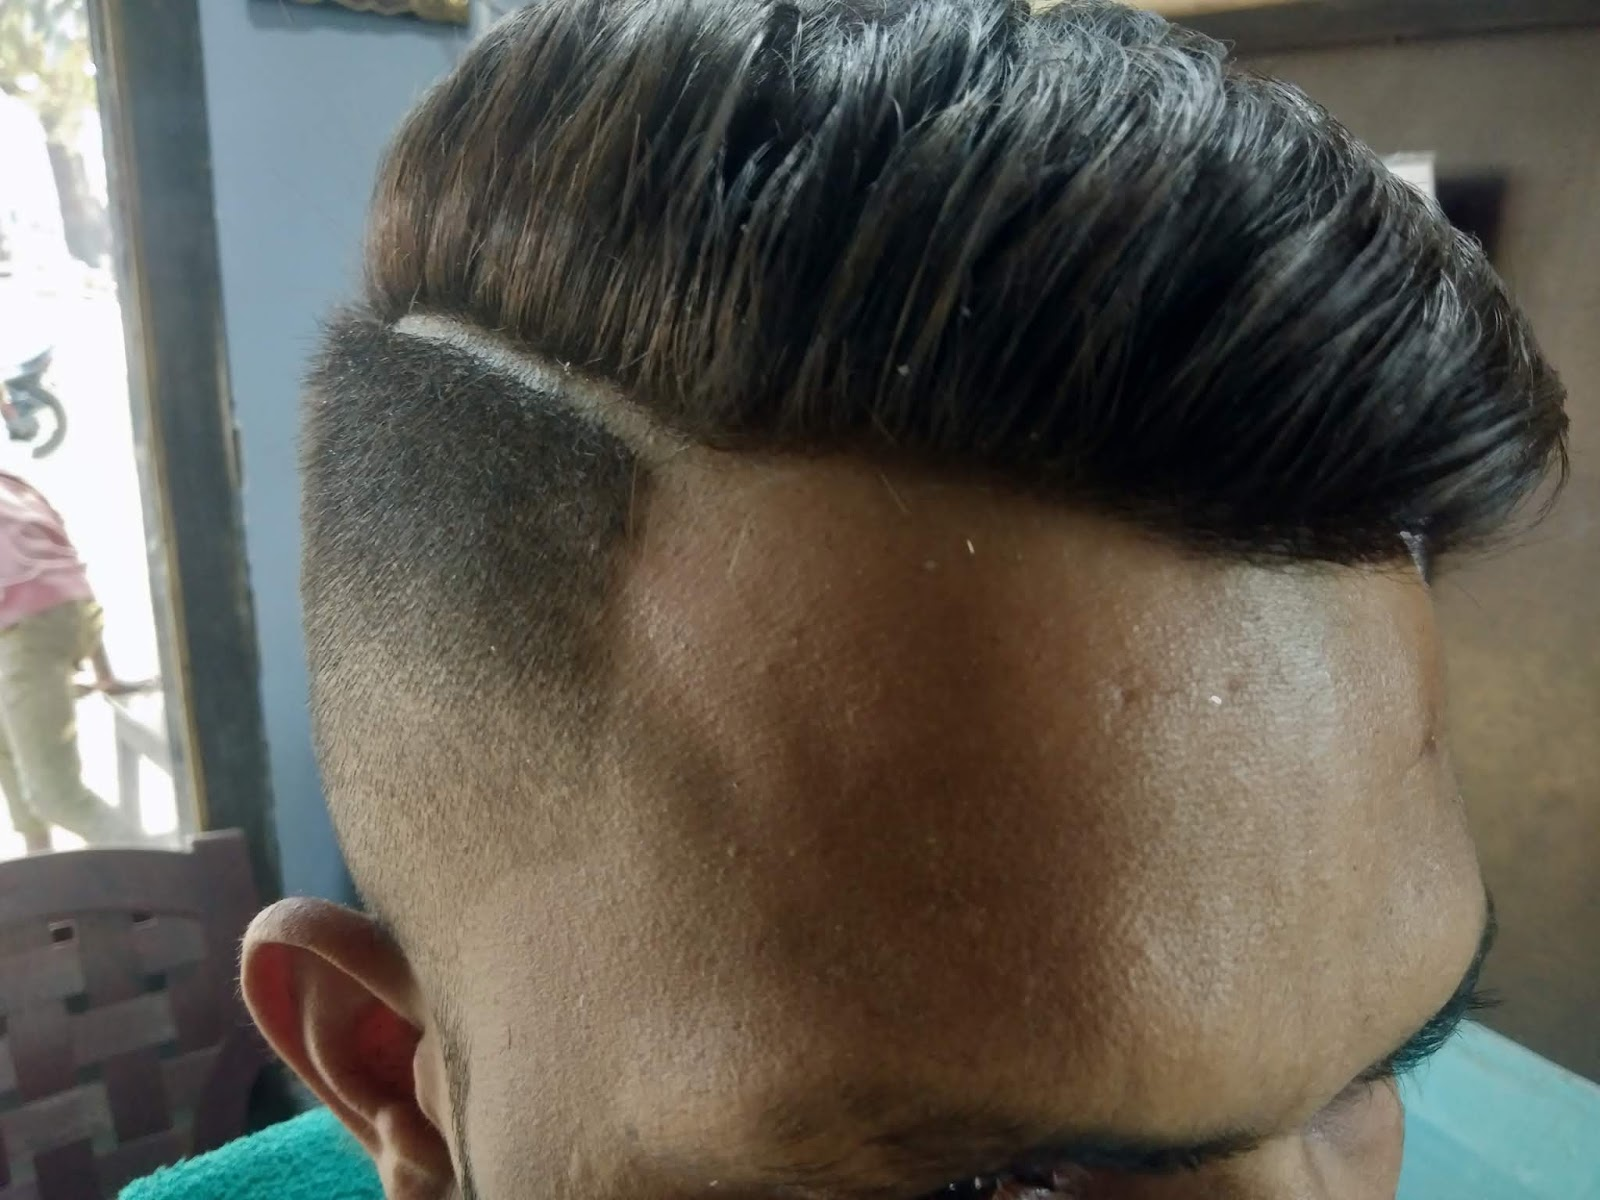 One Side Hair Cutting Haircut Men S वन स ईड ह य कट ग